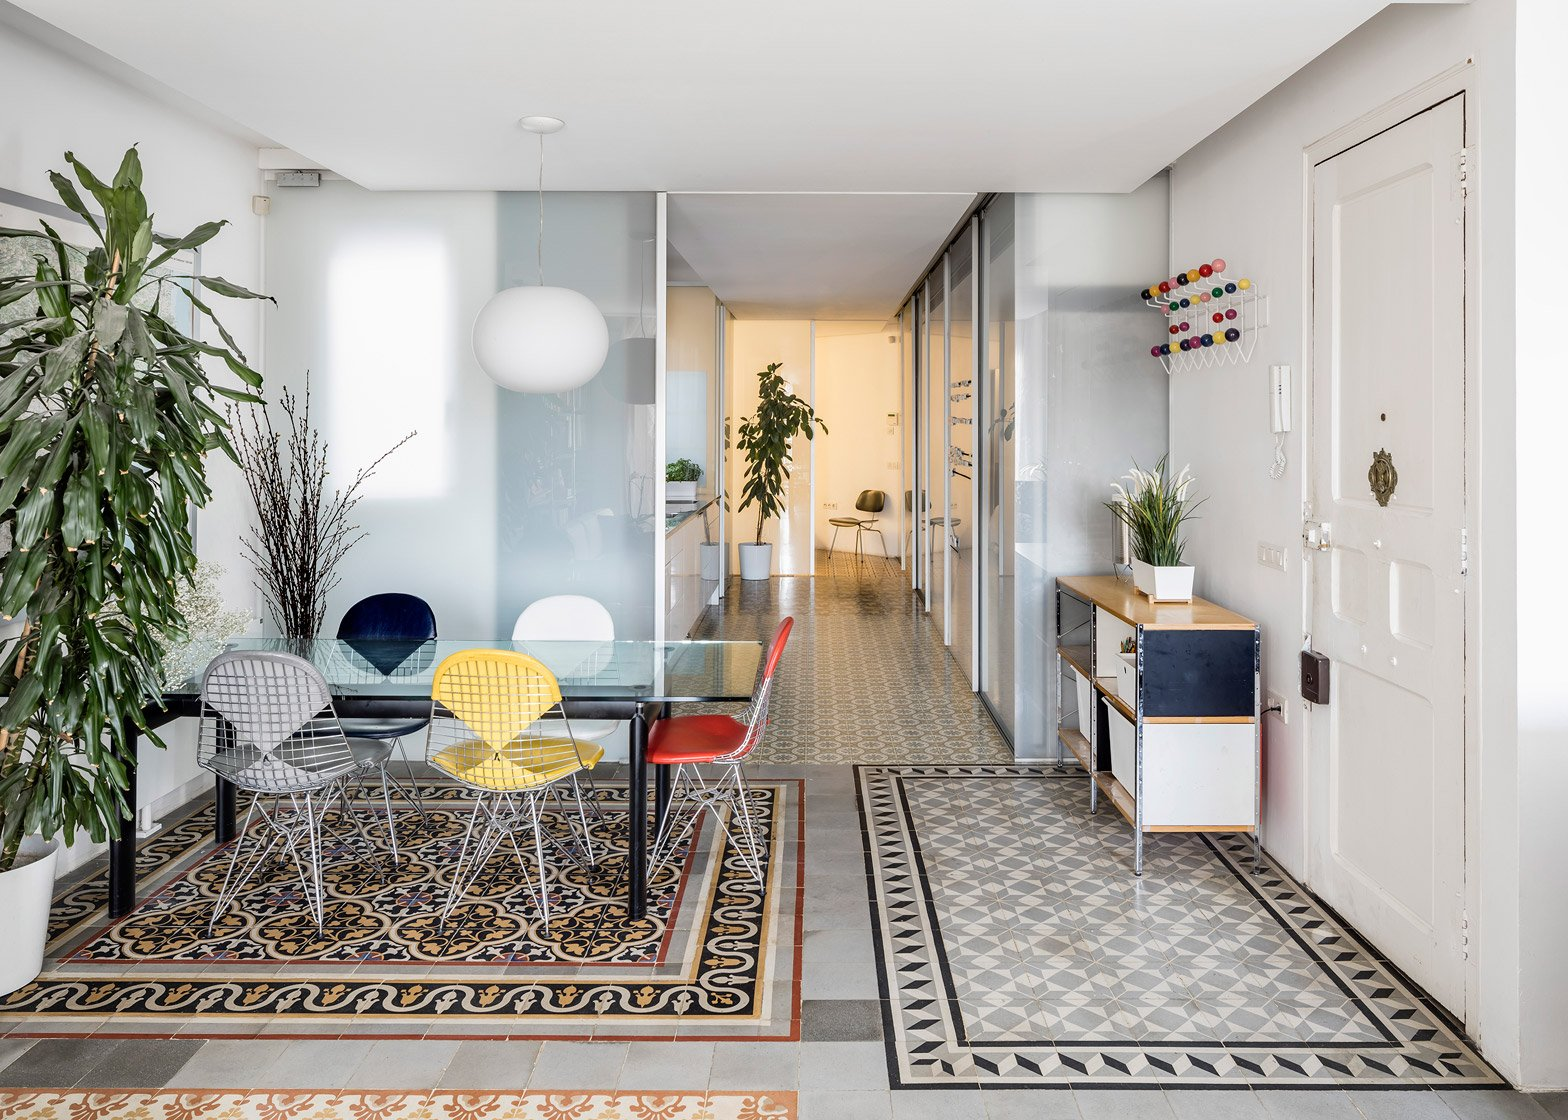 5 Of 5; Barcelona Apartment Renovation By Narch Revealing Mosaic Floors